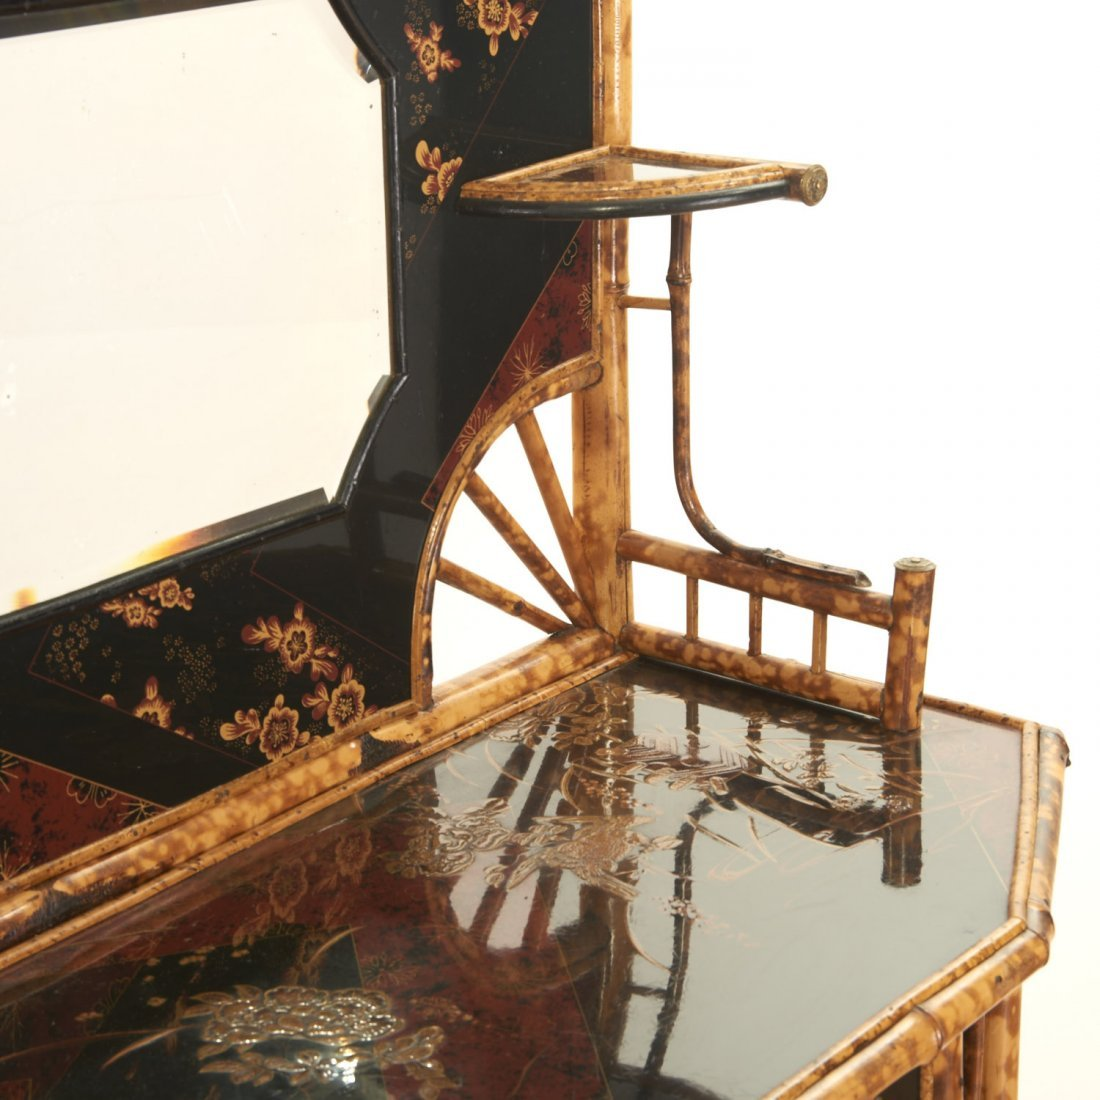 Victorian style chinoiserie lacquer etagere - 6